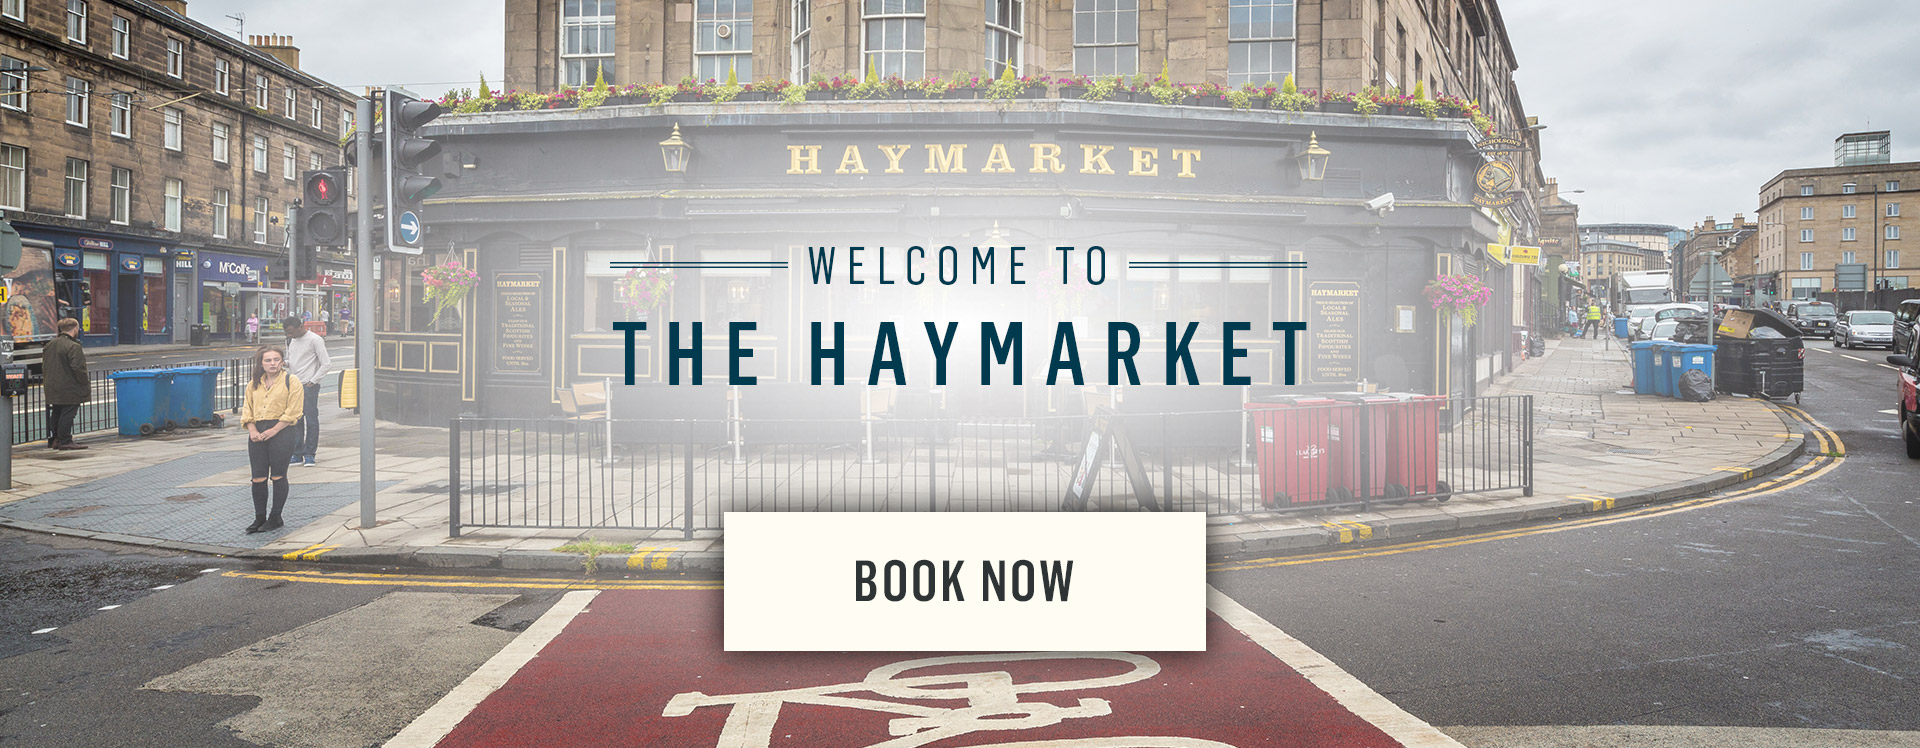 Welcome to Haymarket - Book Now